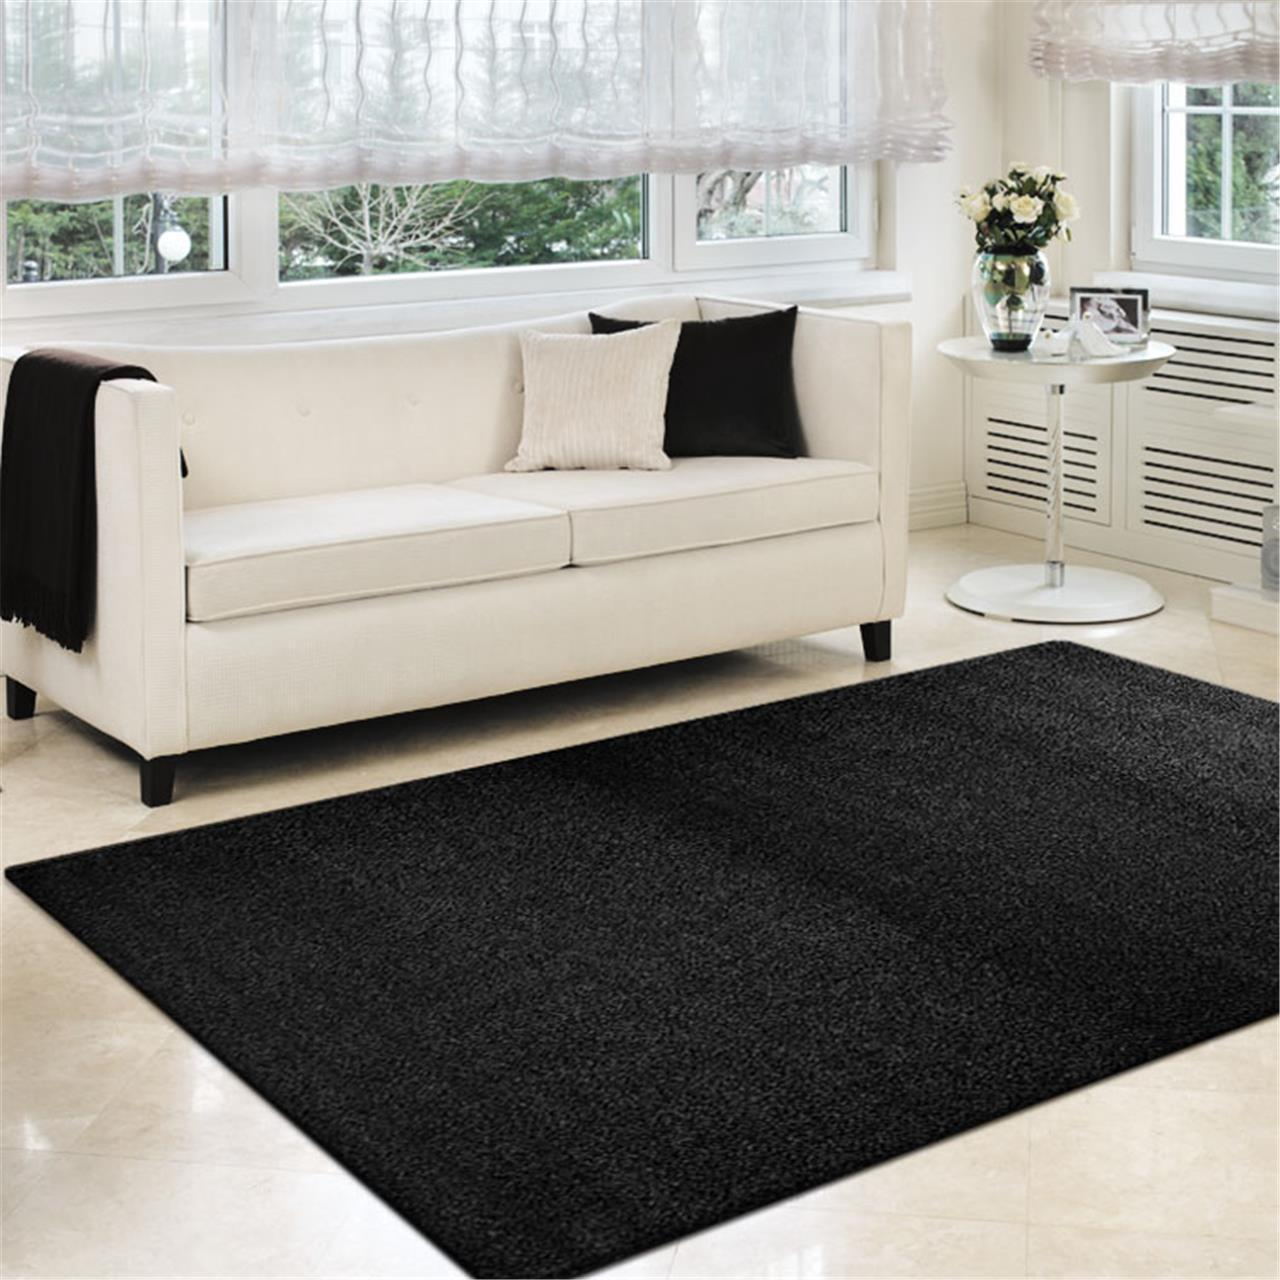 Turkish Sierra Black Rug - decorstore